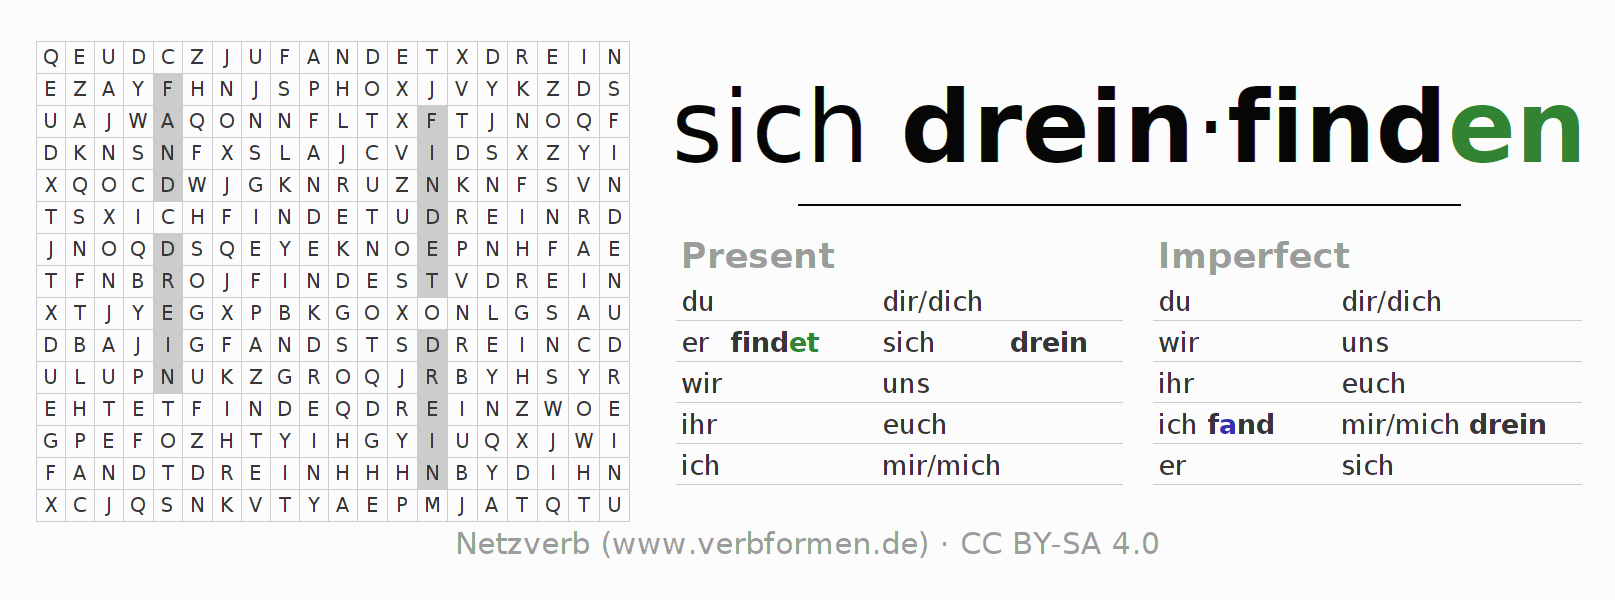 Word search puzzle for the conjugation of the verb sich dreinfinden